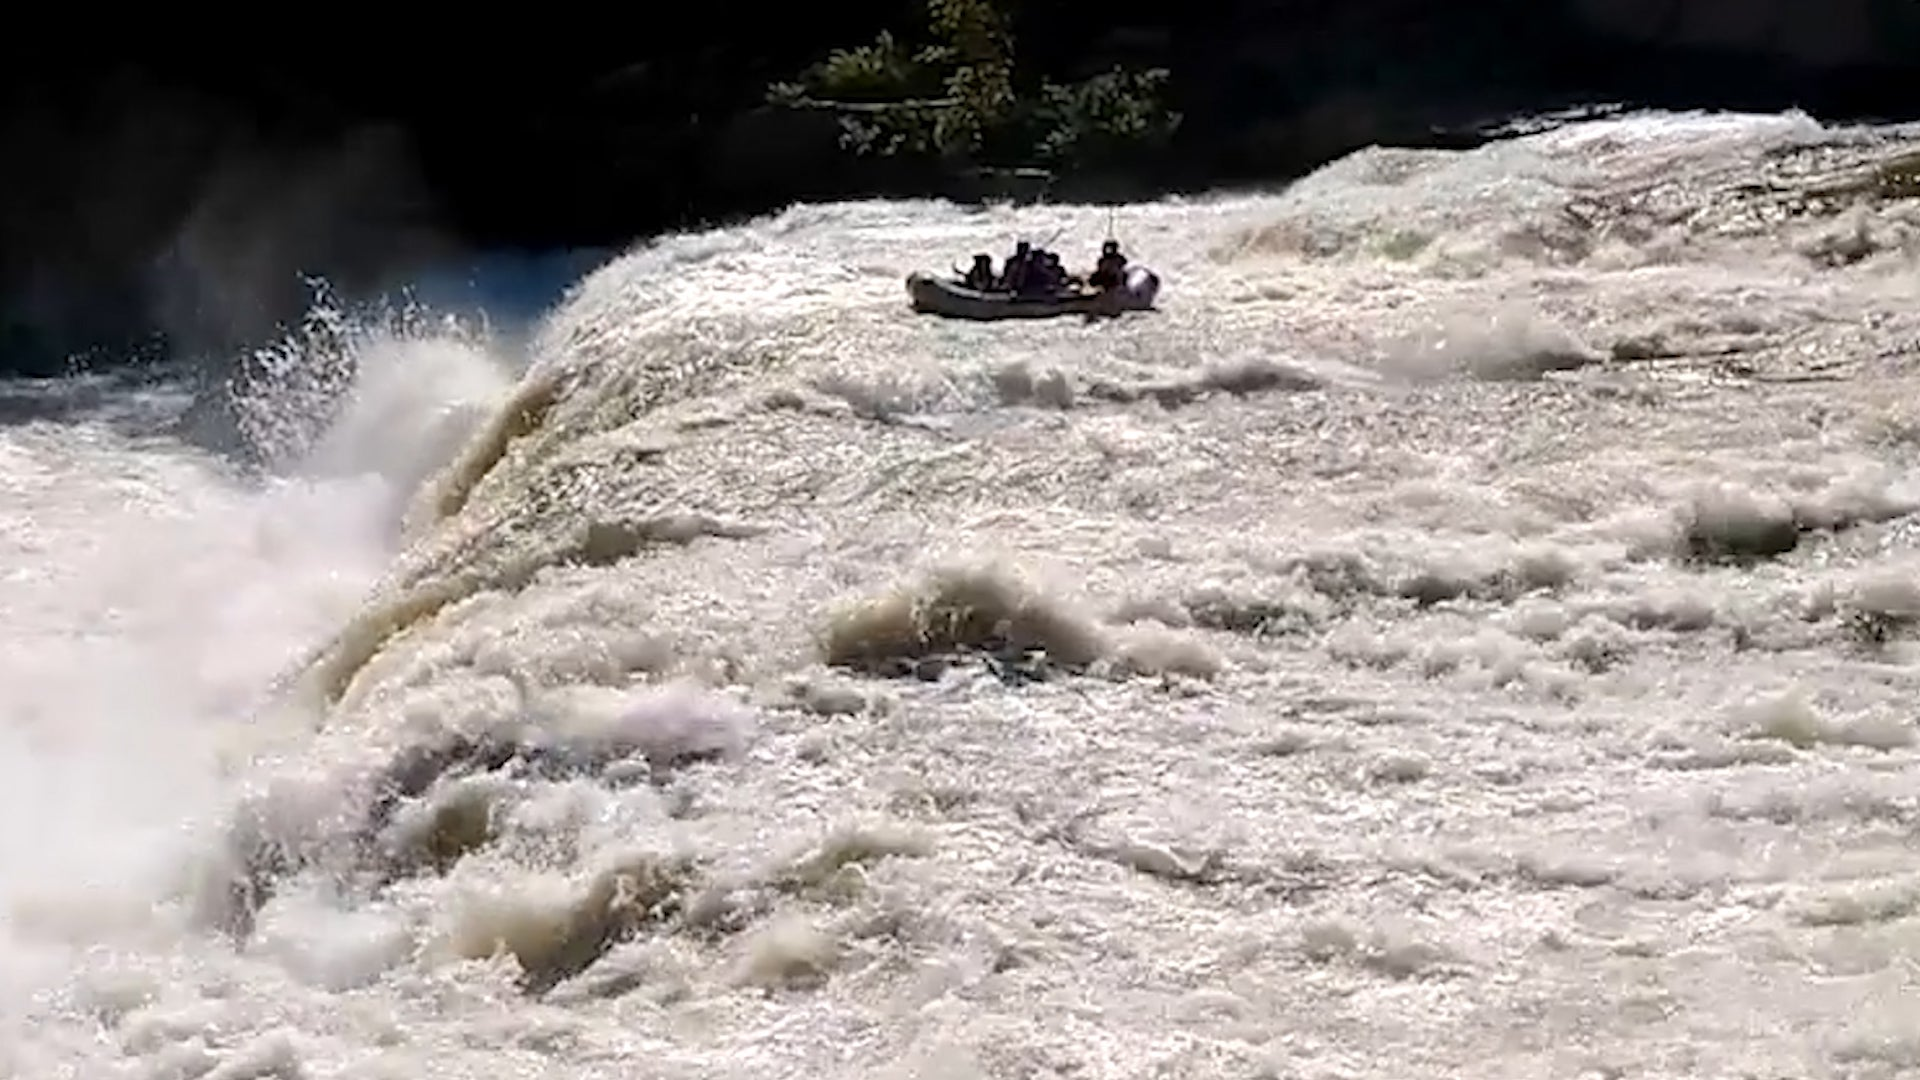 Rafters at Ohiopyle State Park in Pennsylvania are rescued after missing warning signs and plunging over a waterfall.